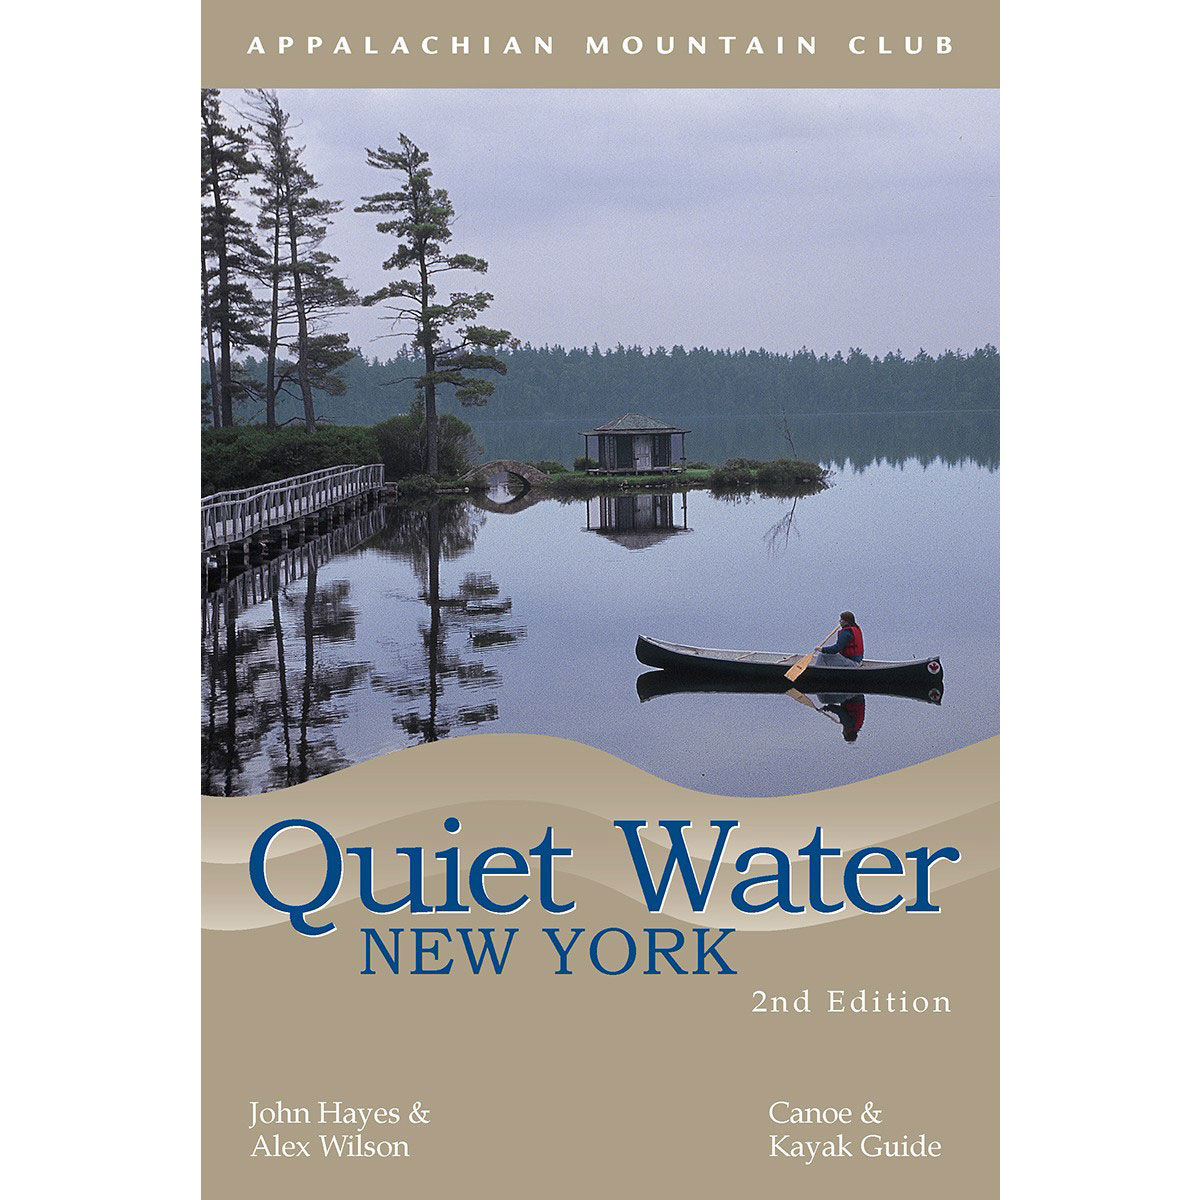 Appalachian Mountain Club Quiet Water New York